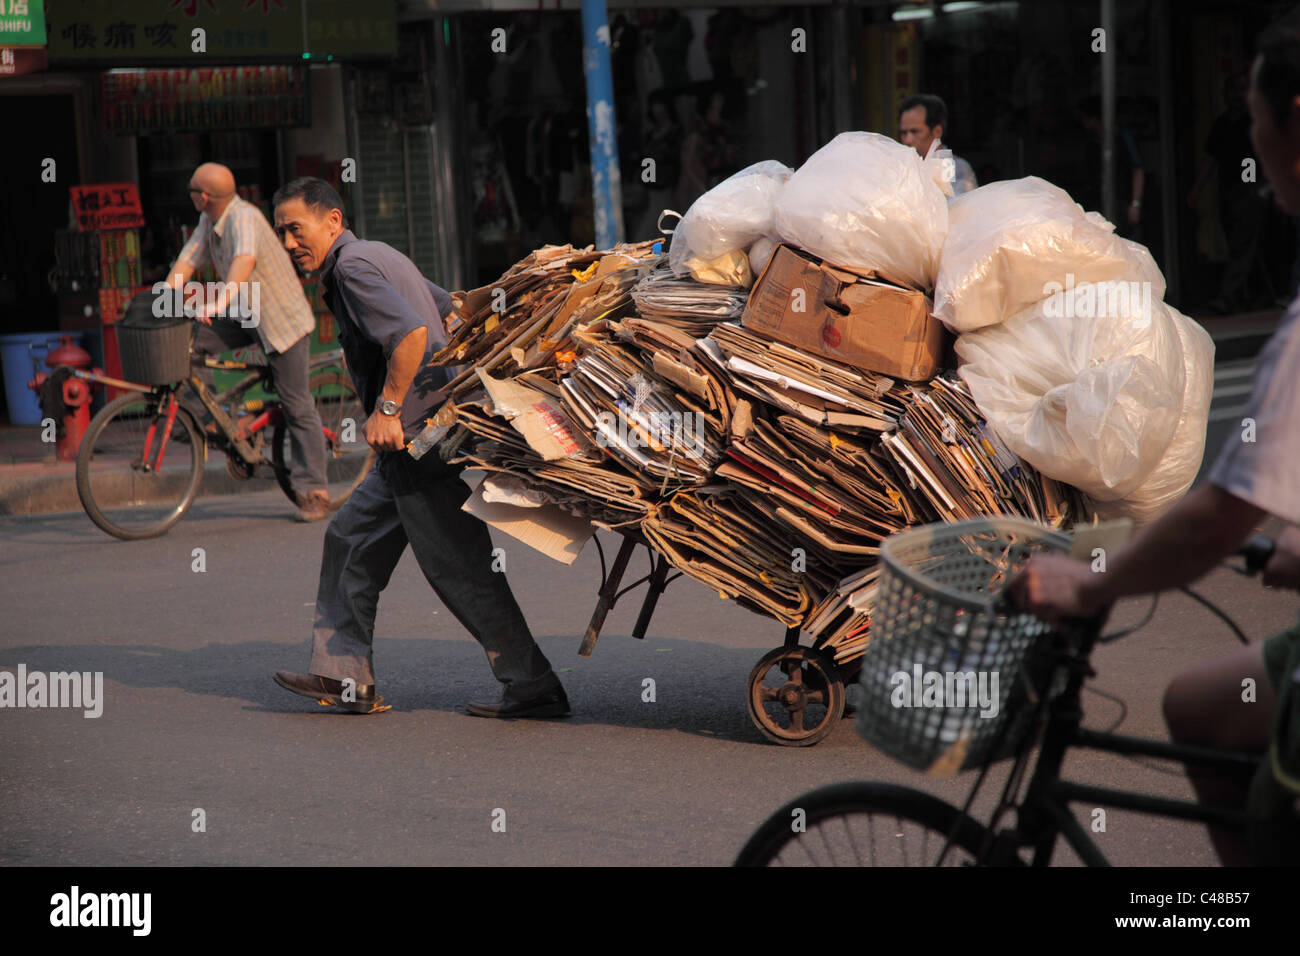 Man pulls cart full of recyclables, Guangzhou, China - Stock Image